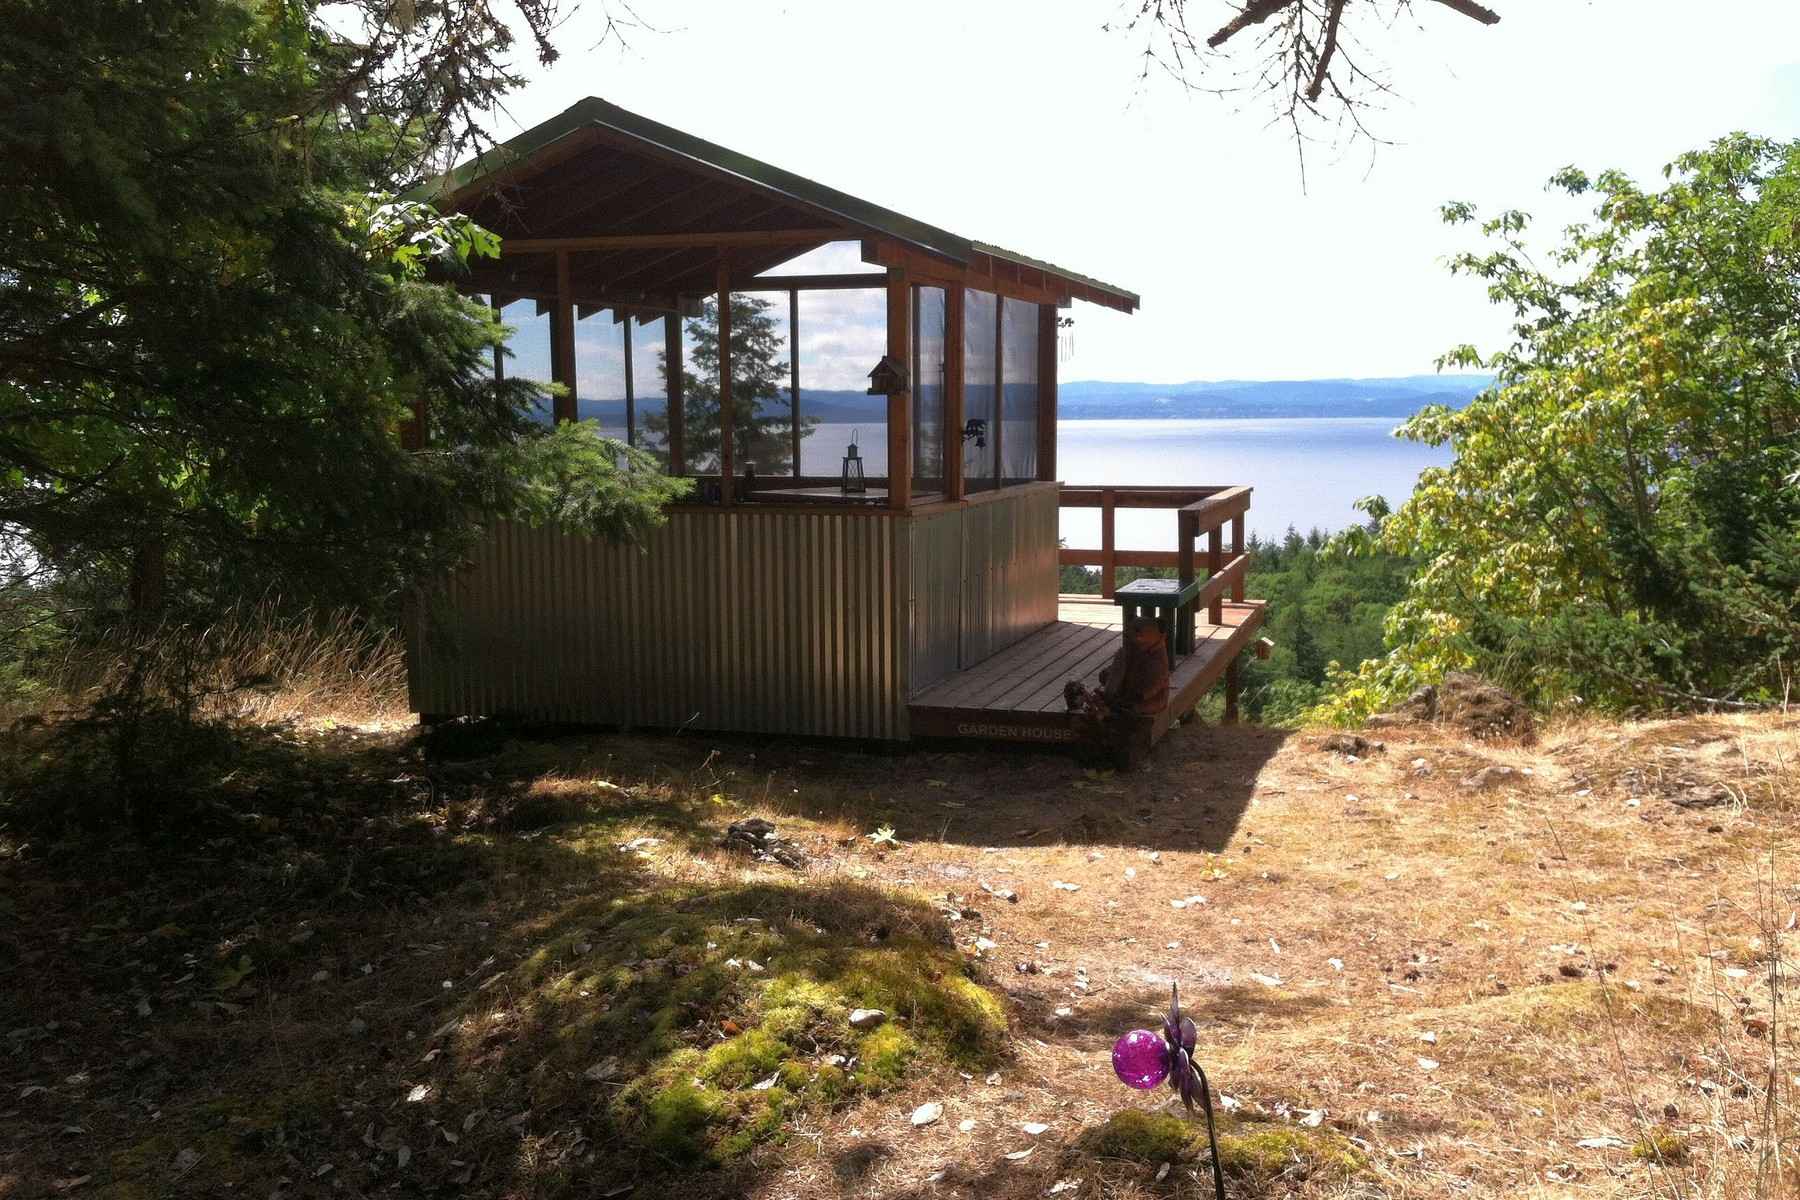 Terreno por un Venta en Great West Side Parcel on San Juan Island XXX Mount Dallas Road, Friday Harbor, Washington, 98250 Estados Unidos